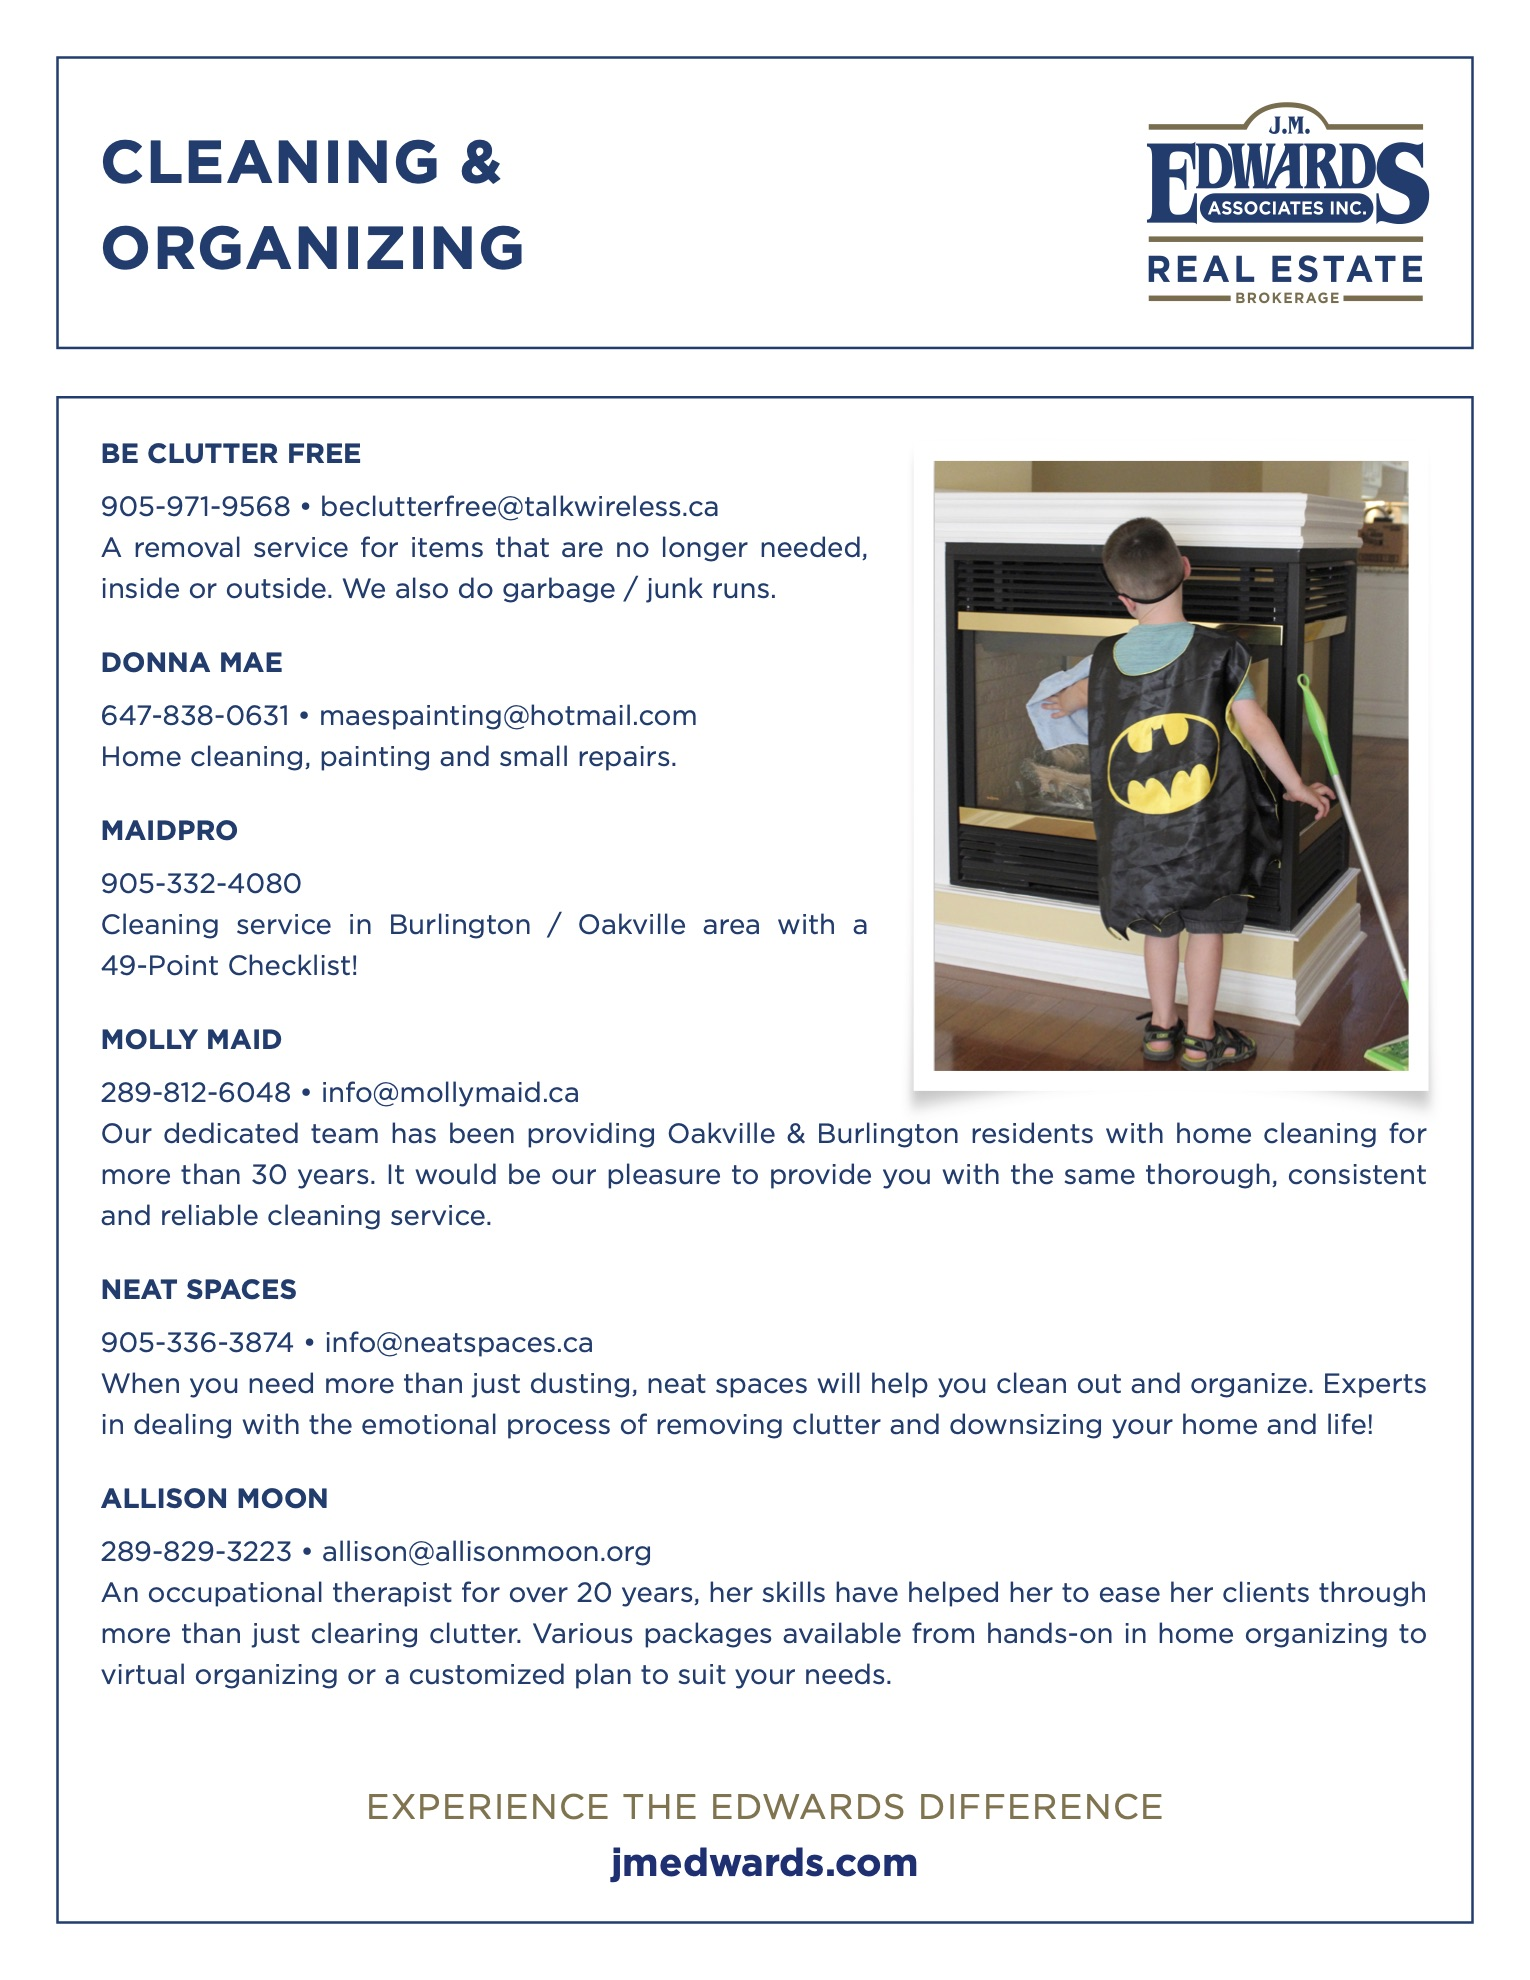 SUBMIT: DS02 - Cleaning & Organizing.jpg